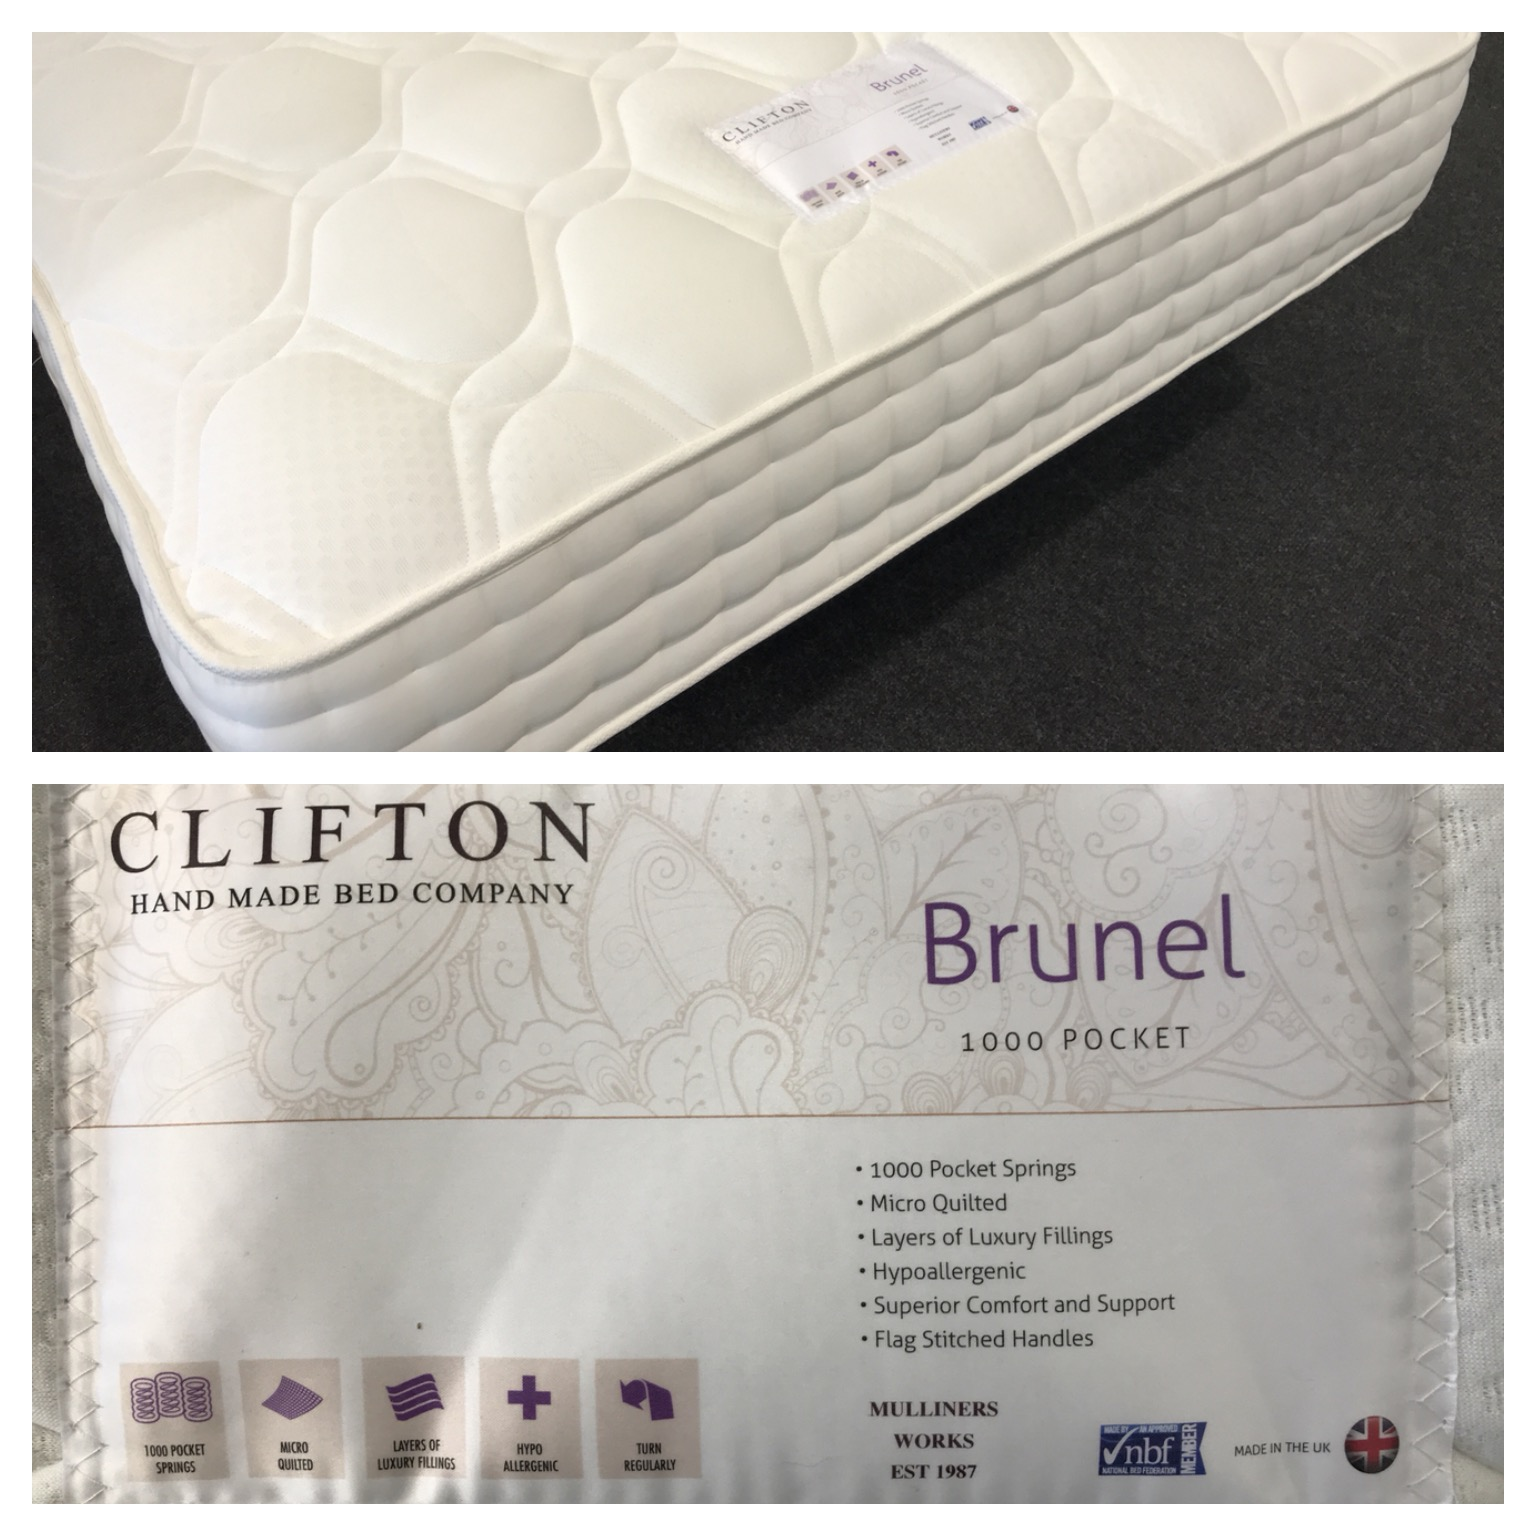 The Bed Super Bristol Beds Stockists Of Memory Foam Products Small Double 4 0